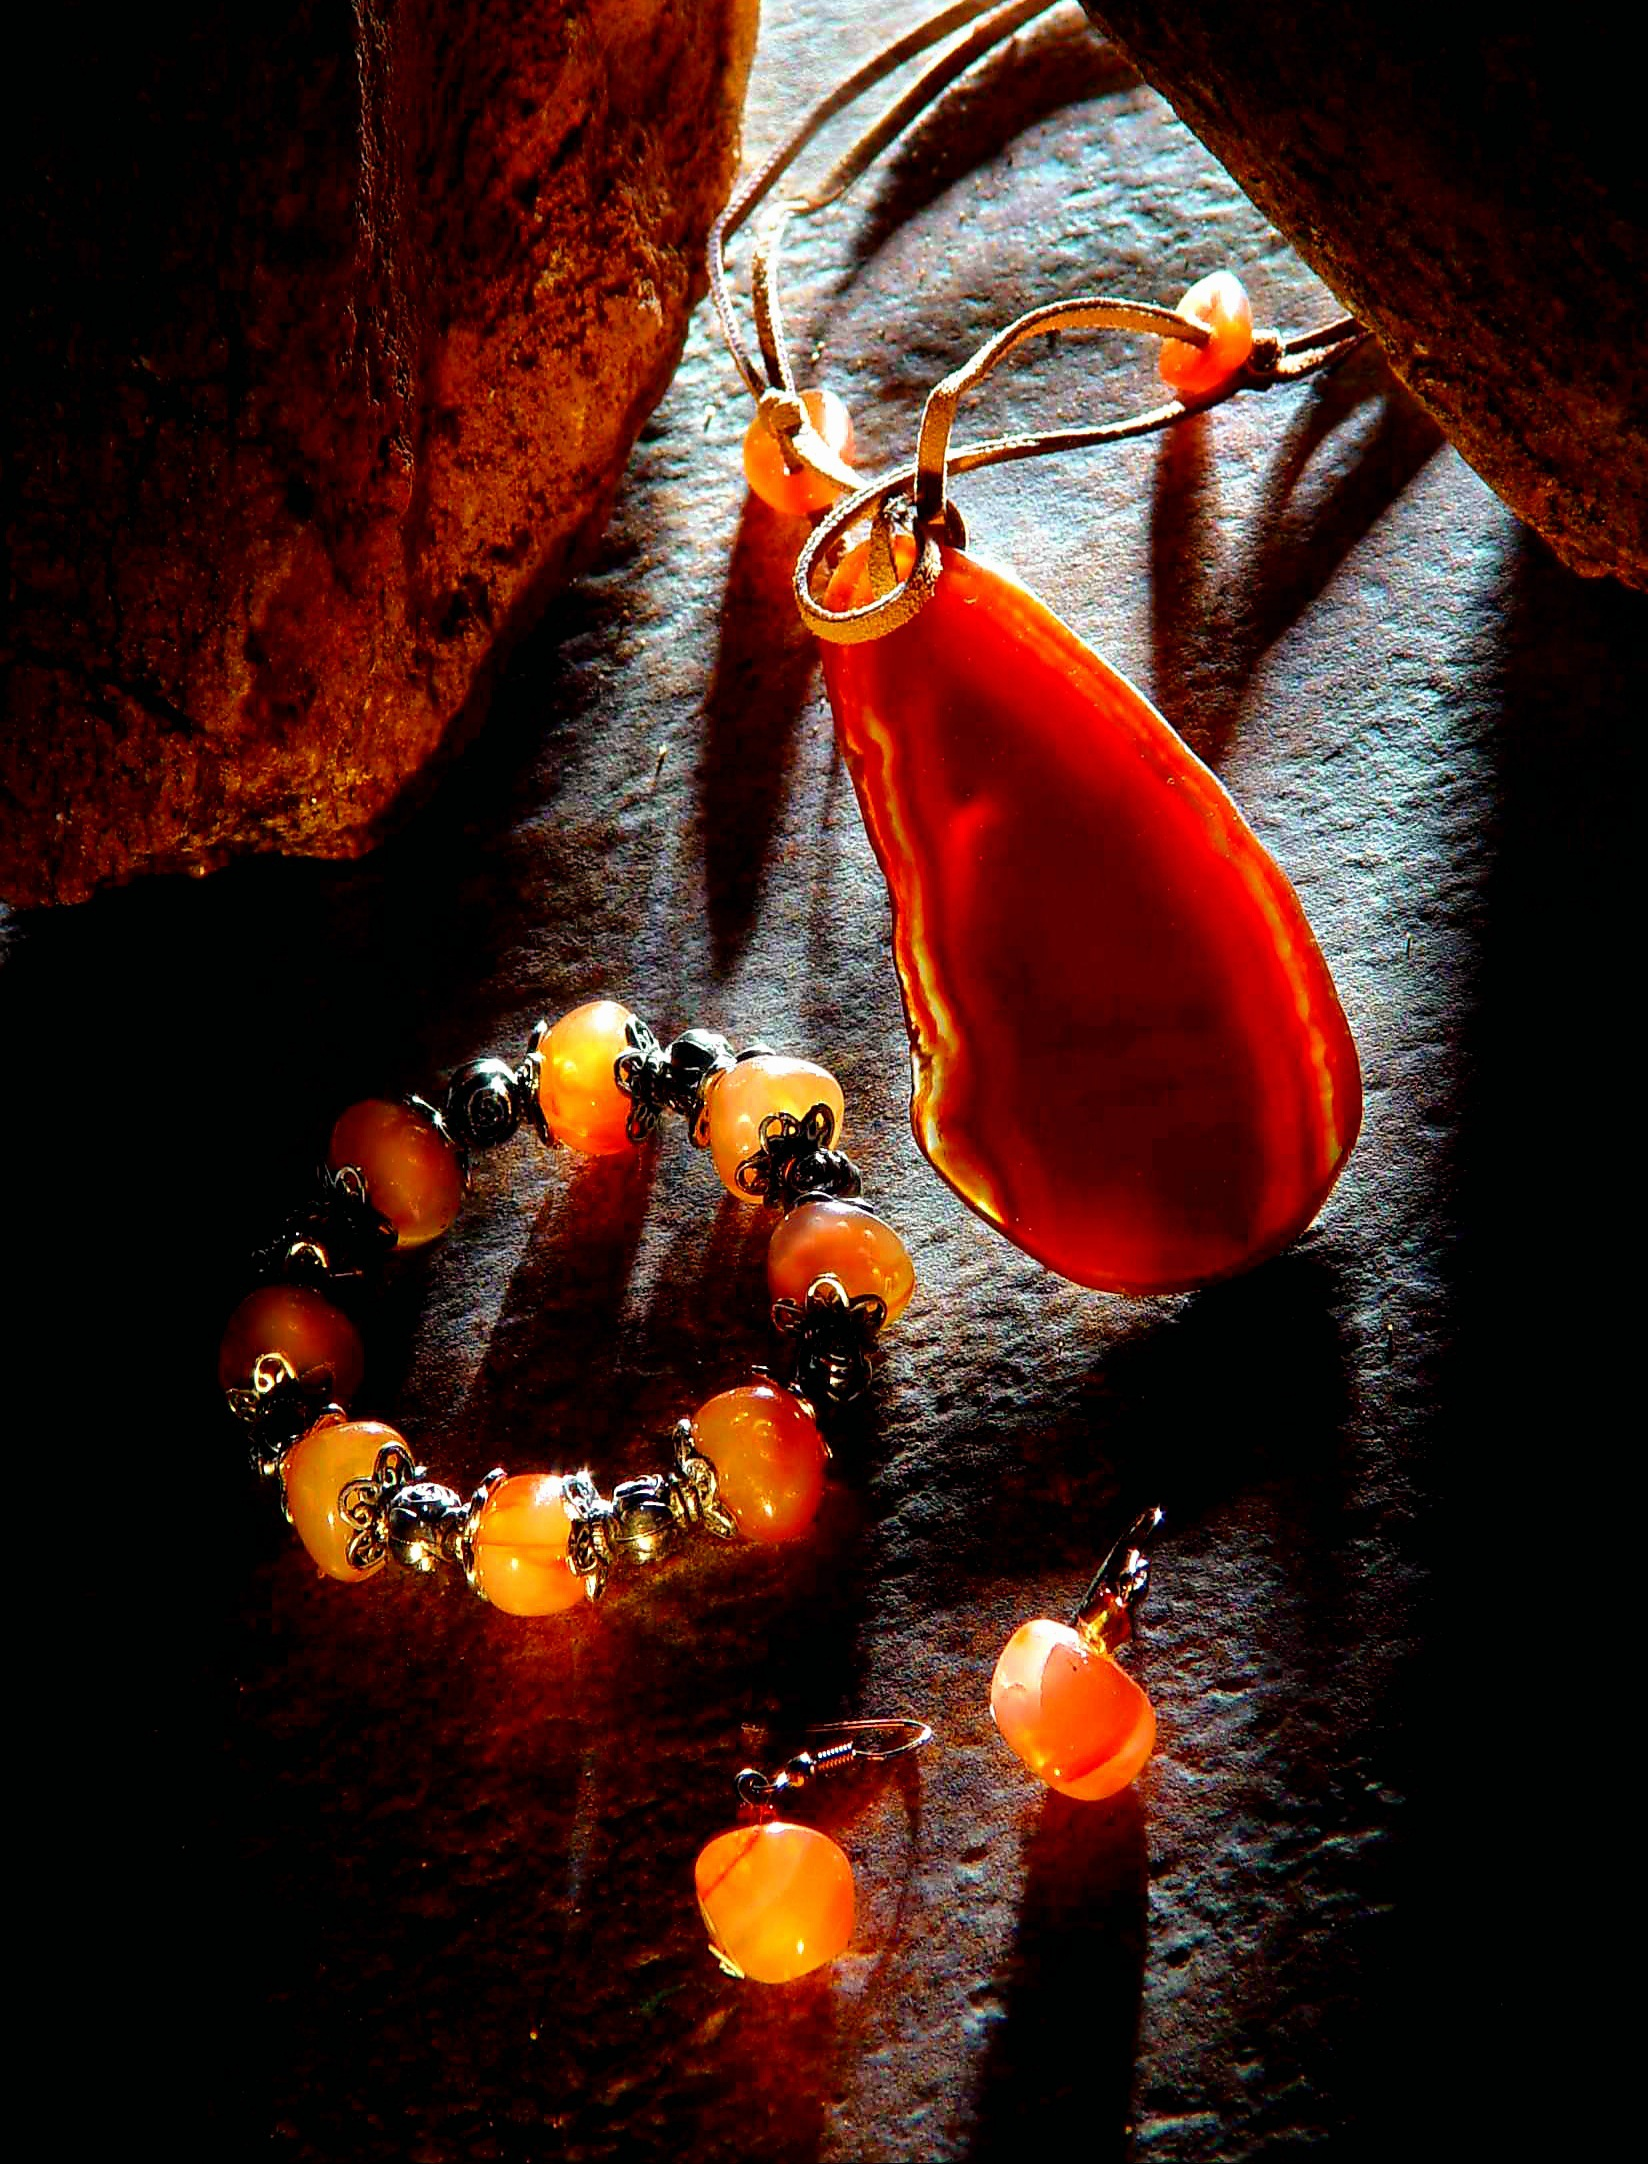 Precious stone pendant and earring jewellery with dramatic lighting for advertising